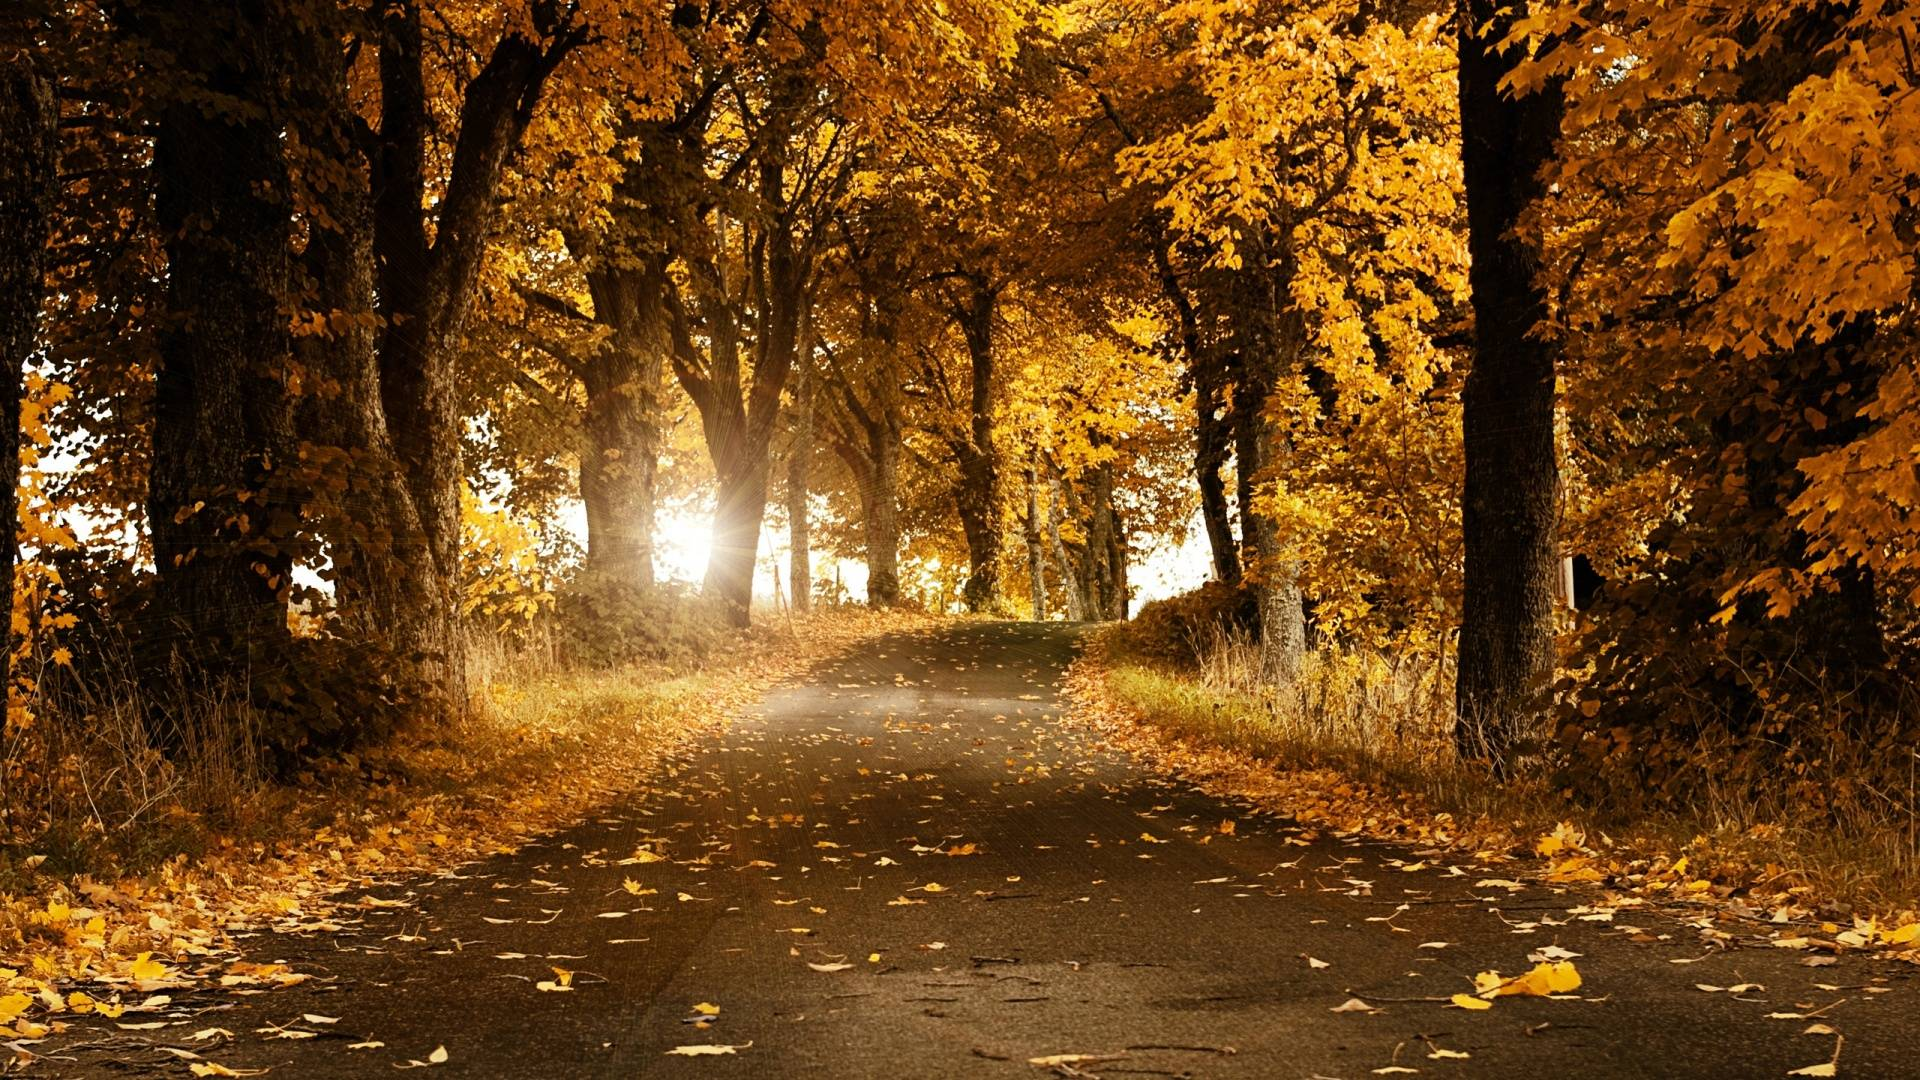 Autumn HD Wallpaper 1920x1080